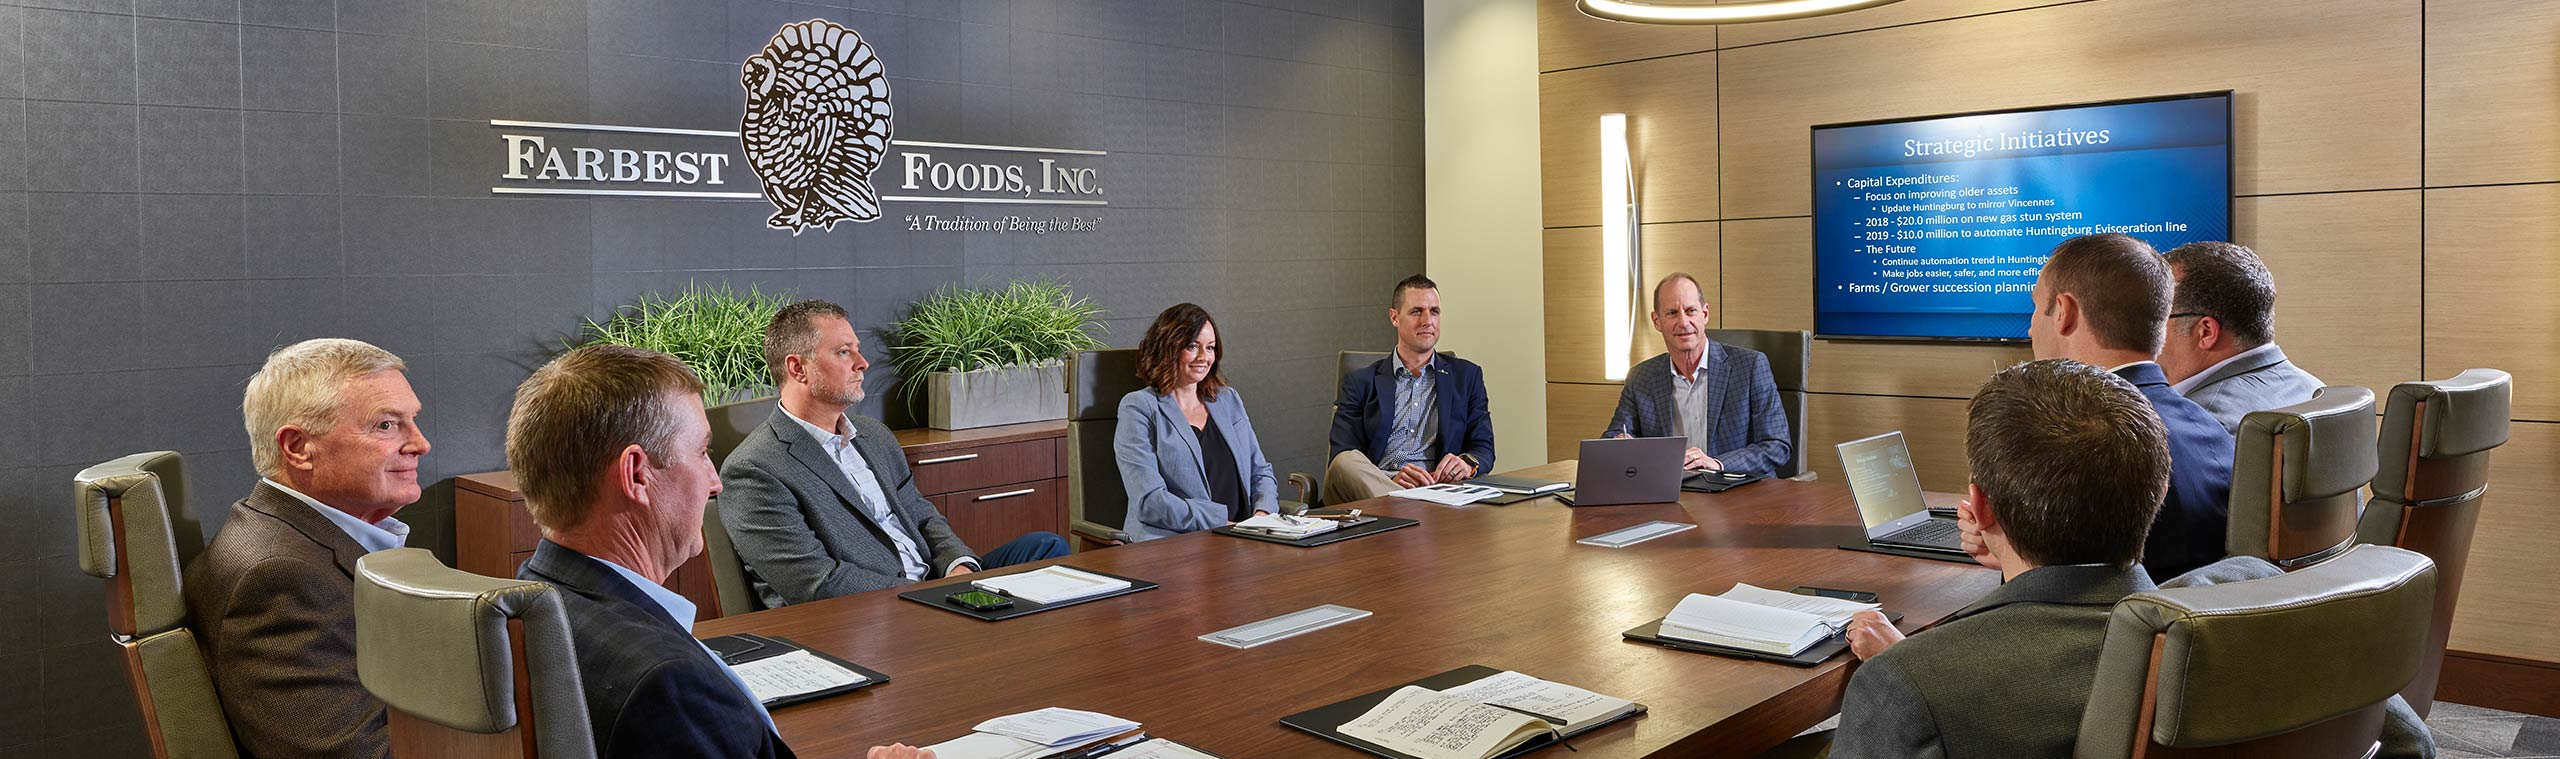 Farbest Foods Executive Team